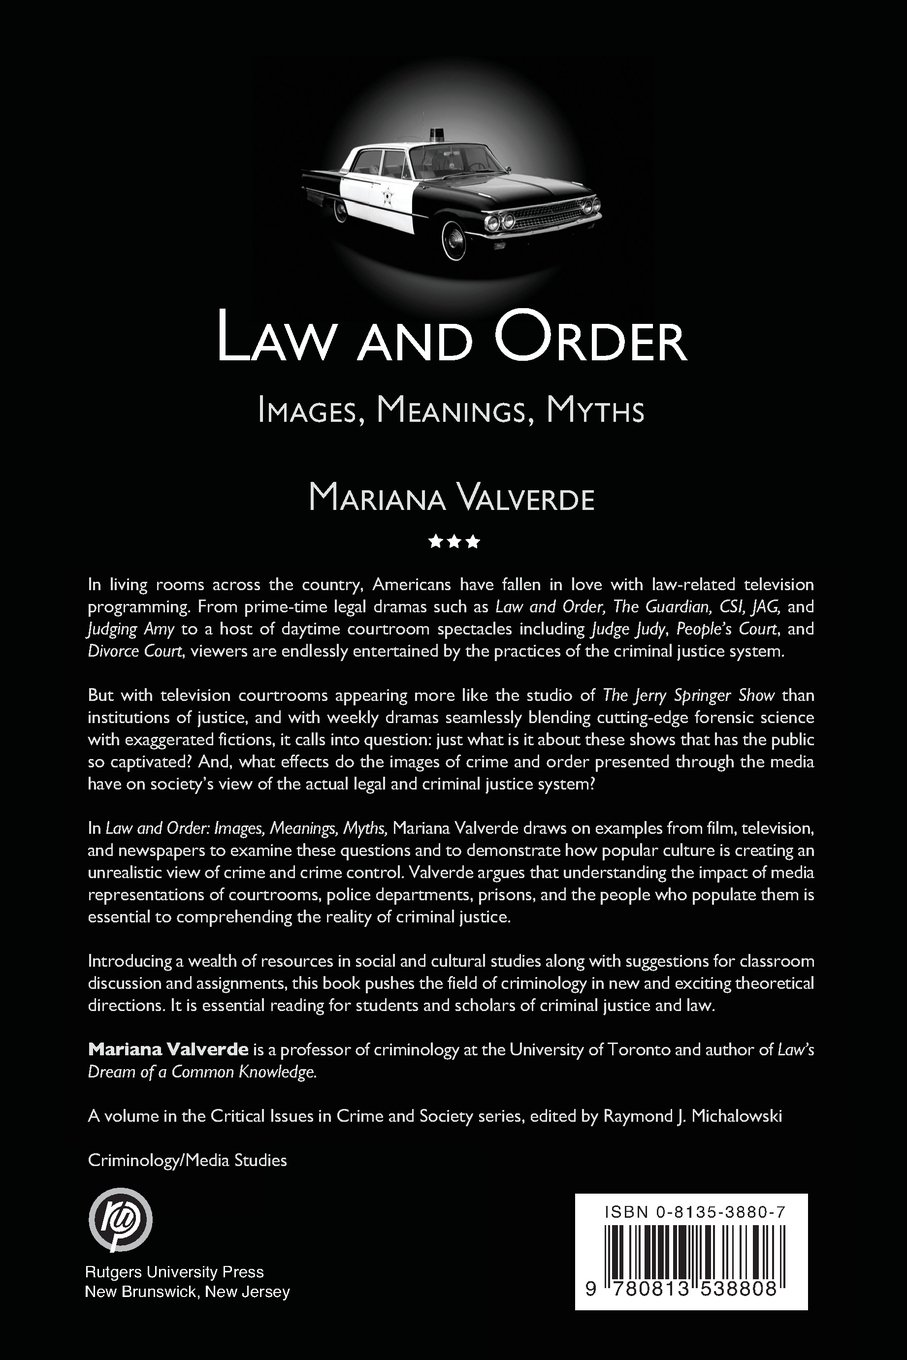 Law and Order: Images, Meanings, Myths (Critical Issues in Crime and  Society): Mariana Valverde: 9780813538808: Amazon.com: Books